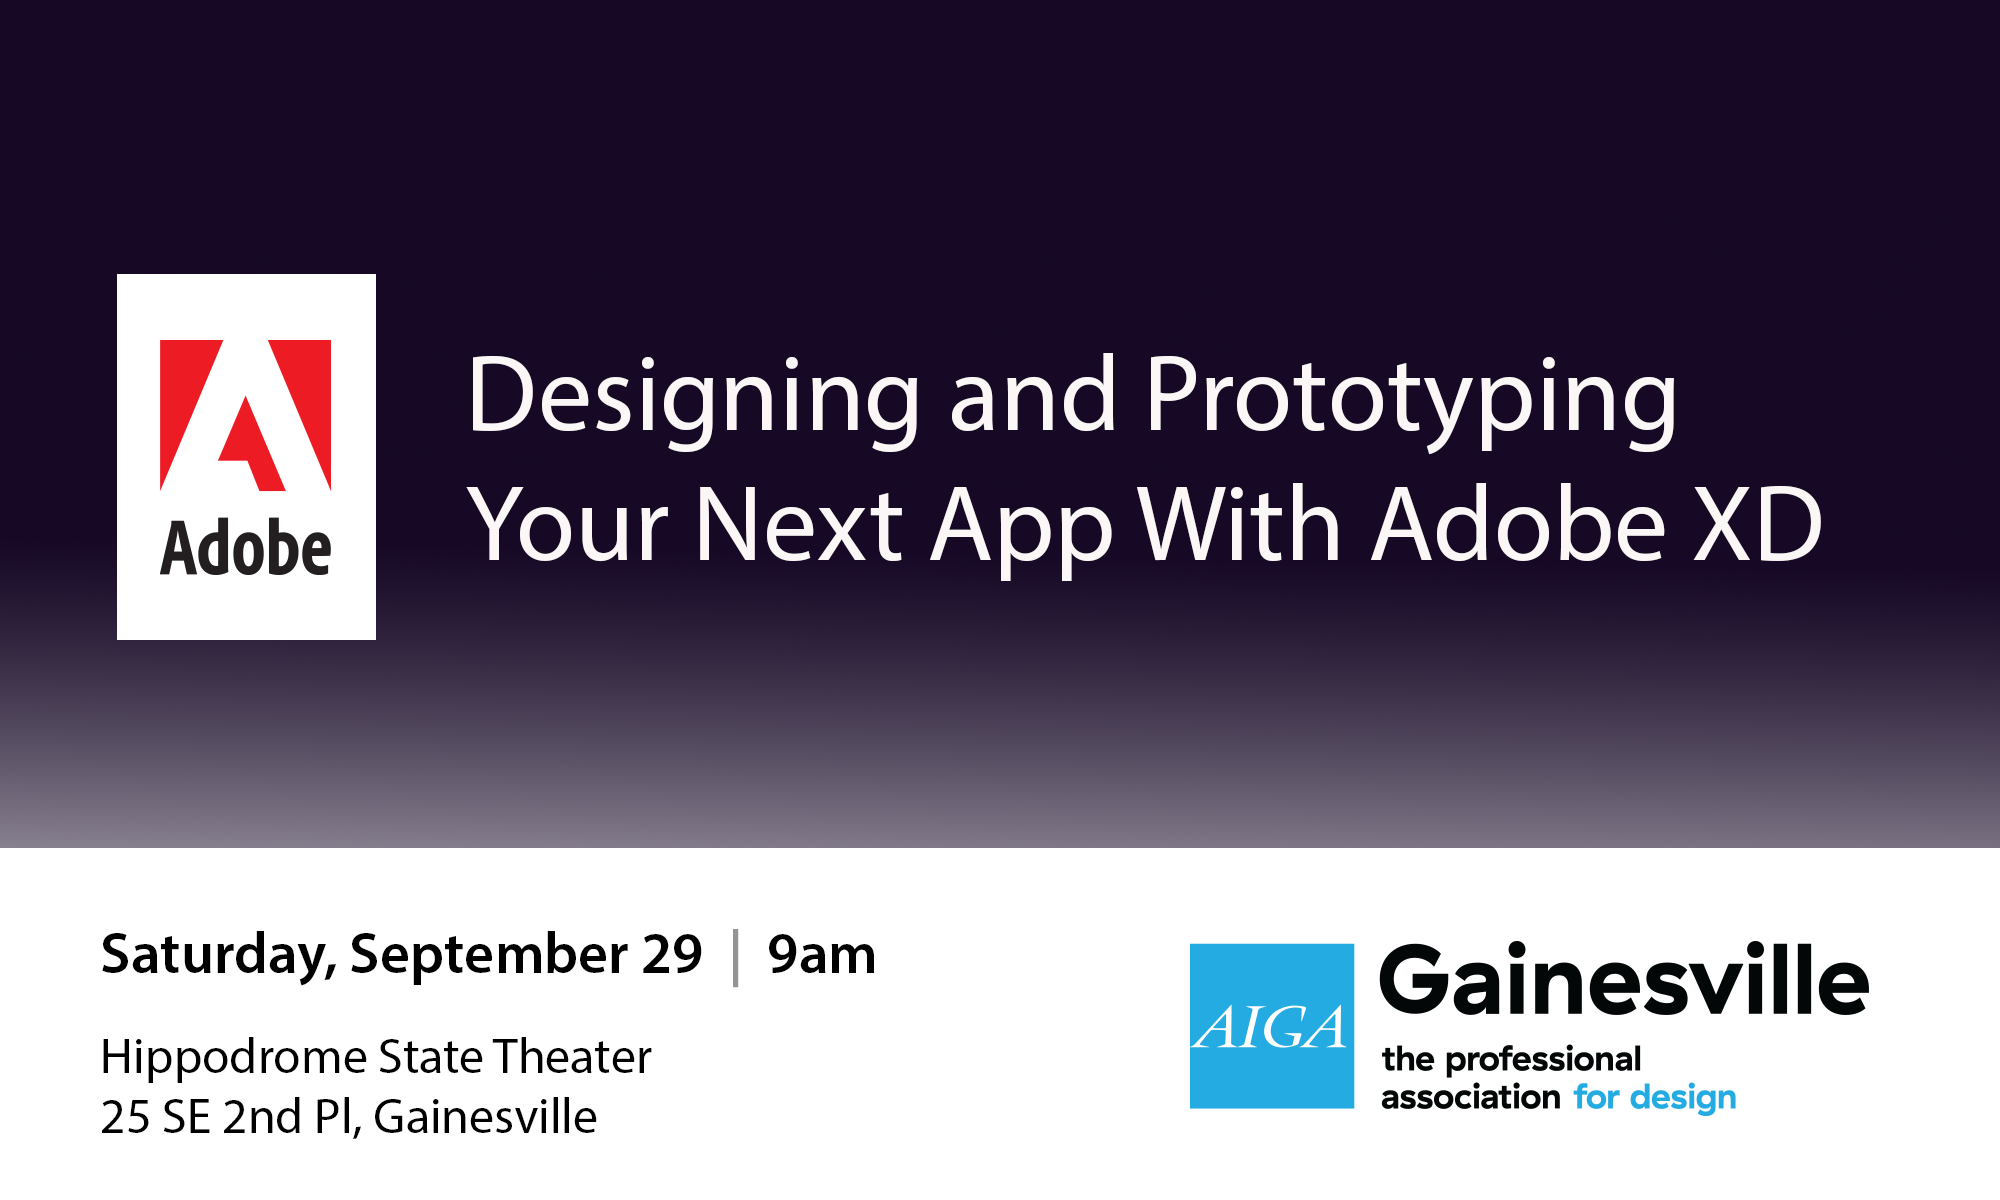 Adobe XD Workshop - AIGA GainesvilleAIGA Gainesville